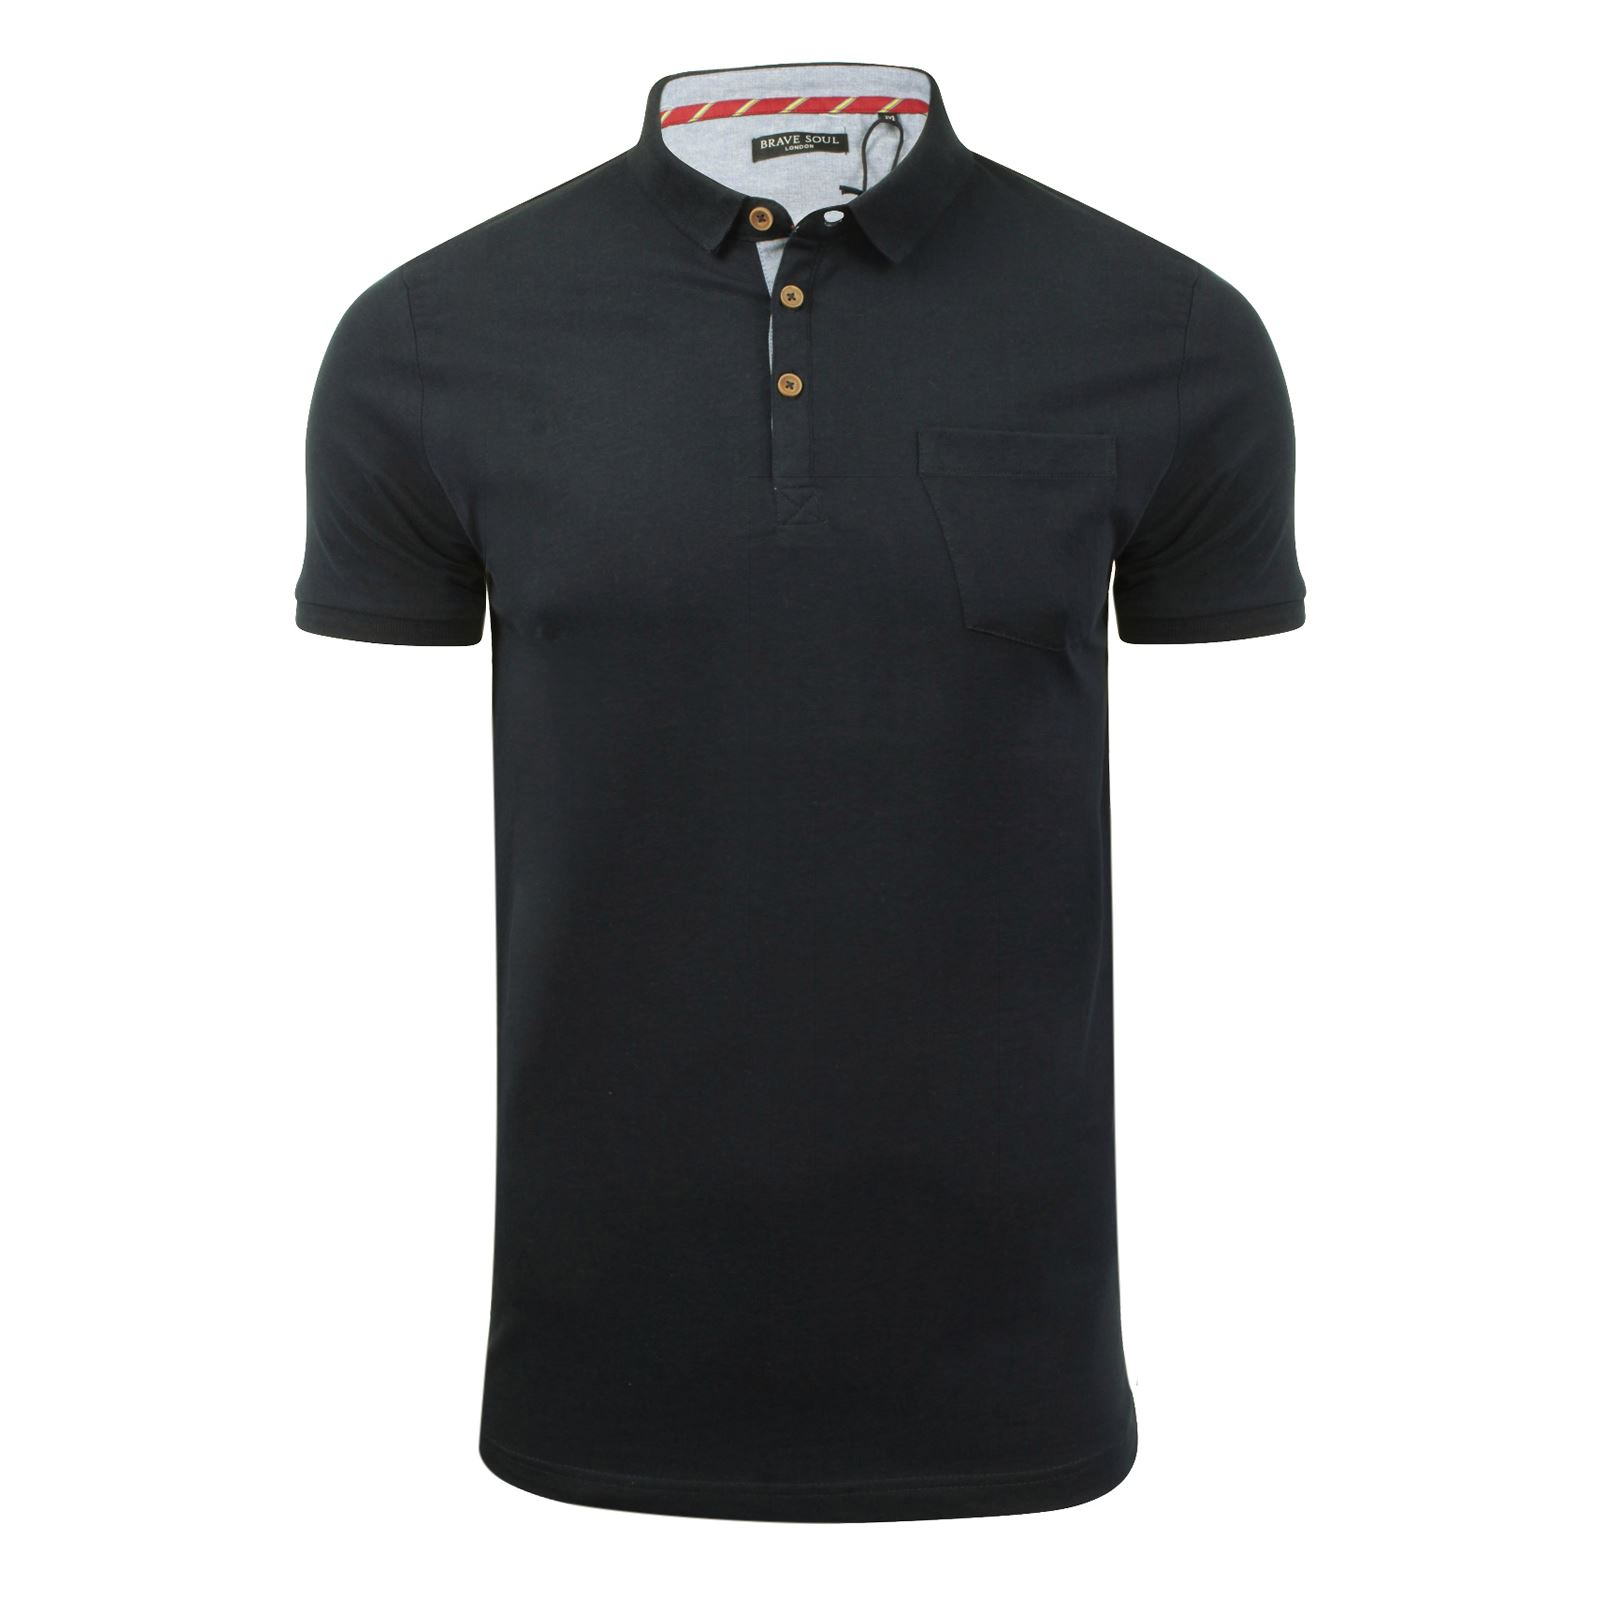 Mens-Polo-T-Shirt-Brave-Soul-Glover-Cotton-Collared-Short-Sleeve-Casual-Top thumbnail 78